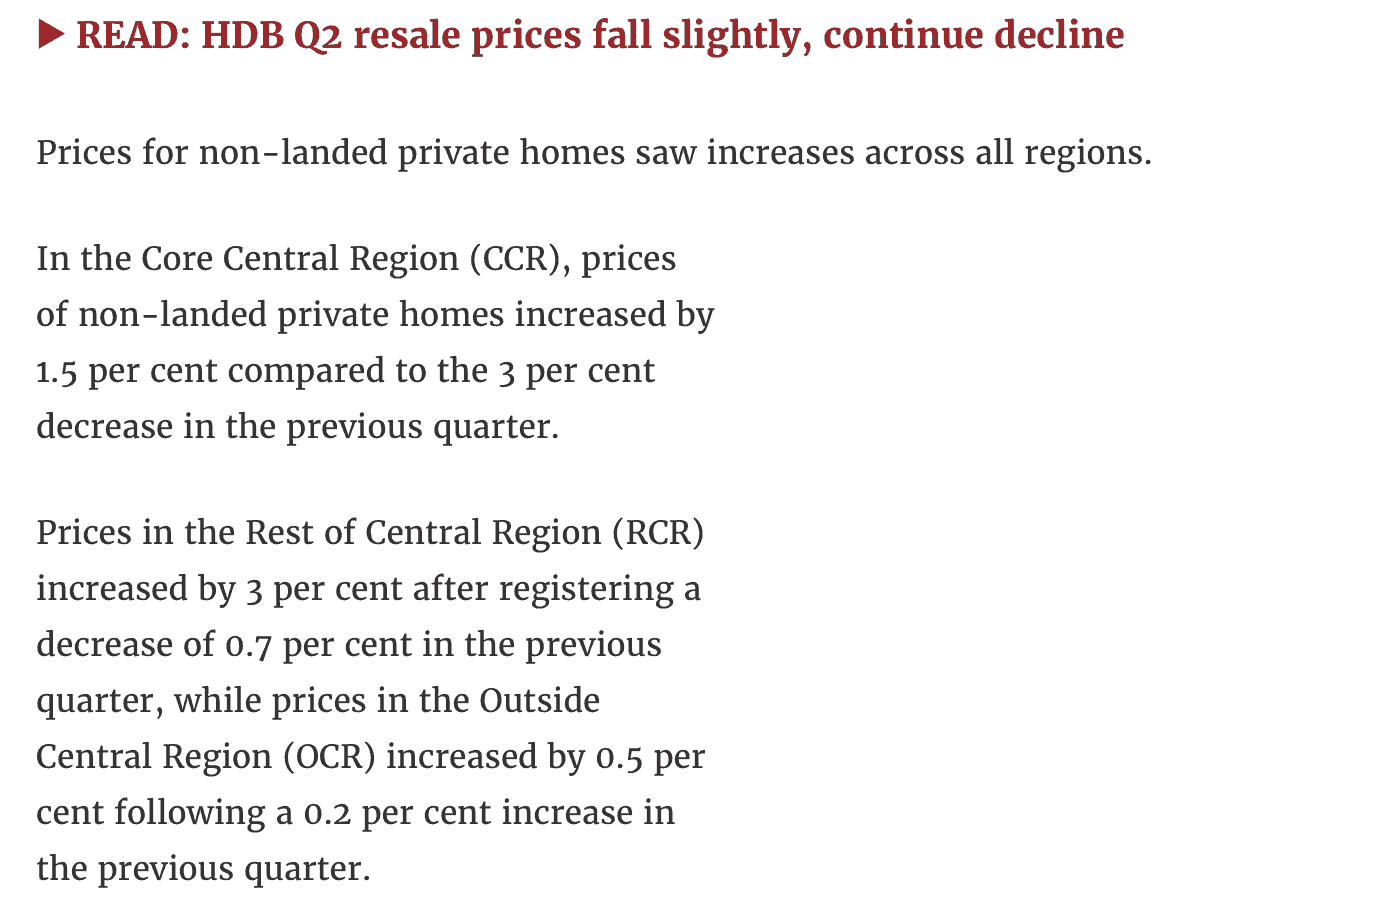 News - Singapore Private Home Prices Rise Unexpectedly - 3